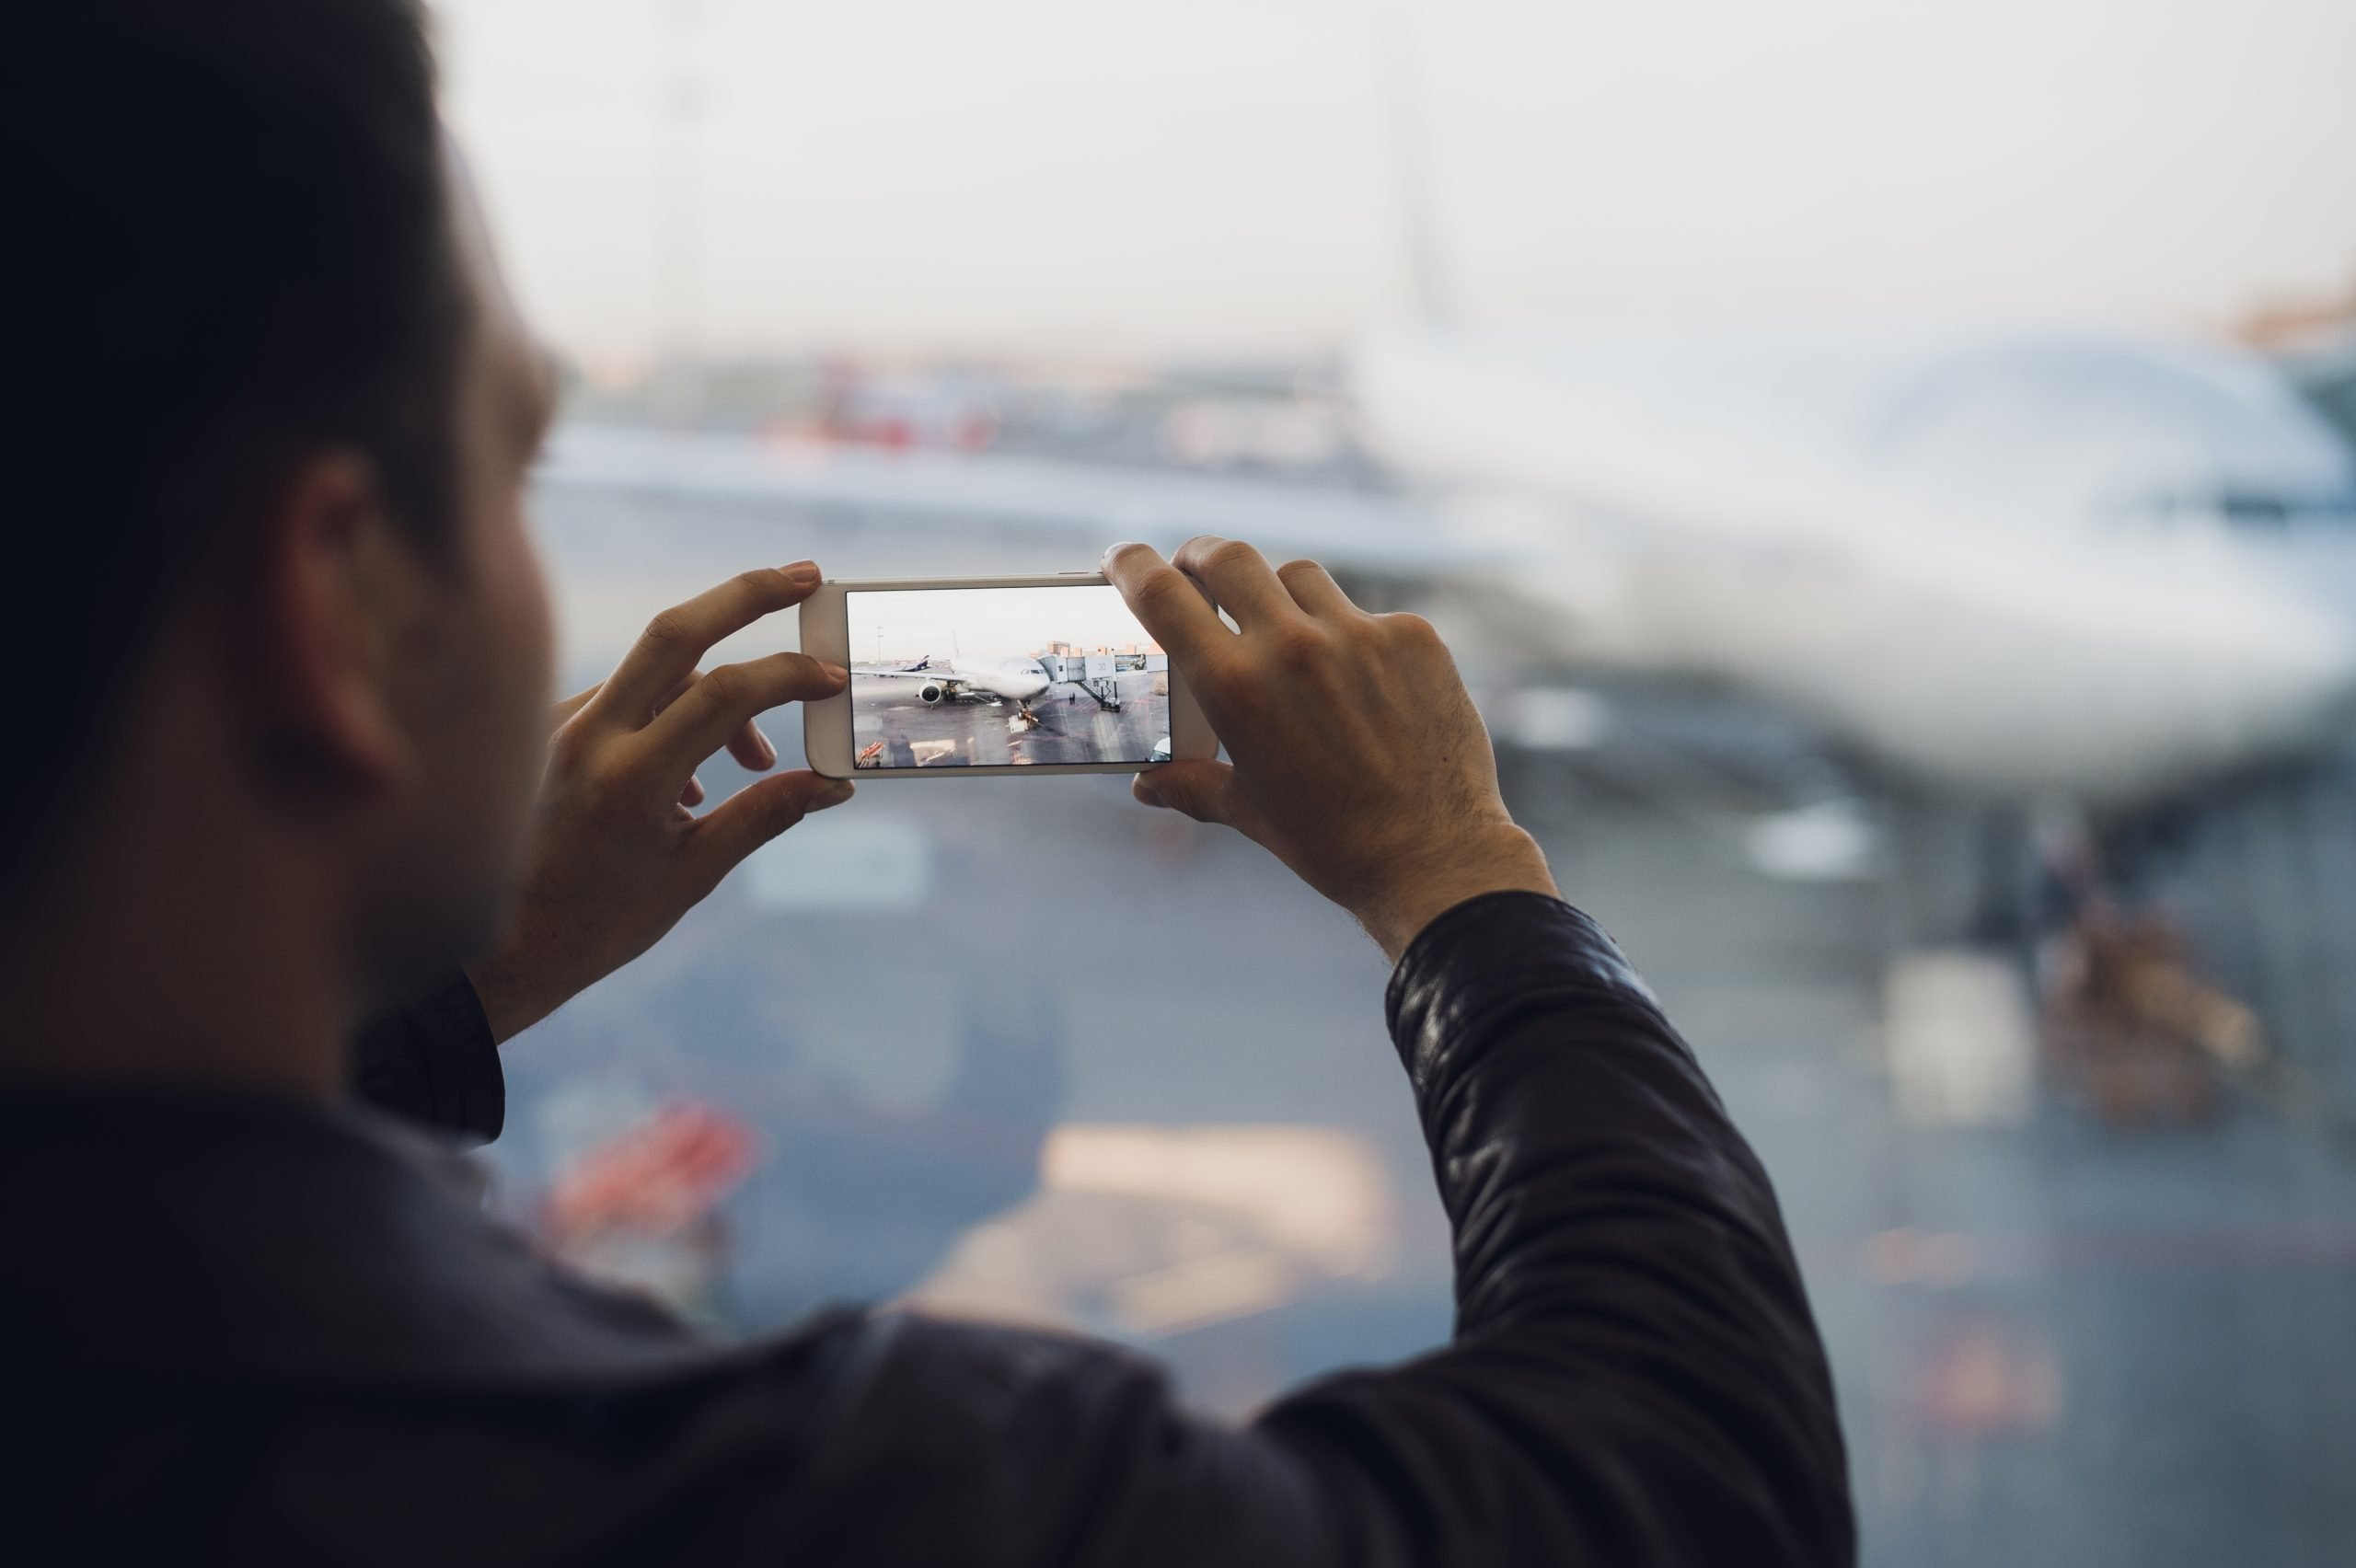 Man hand take picture of airplane using cellphone. Tourism concept photo.